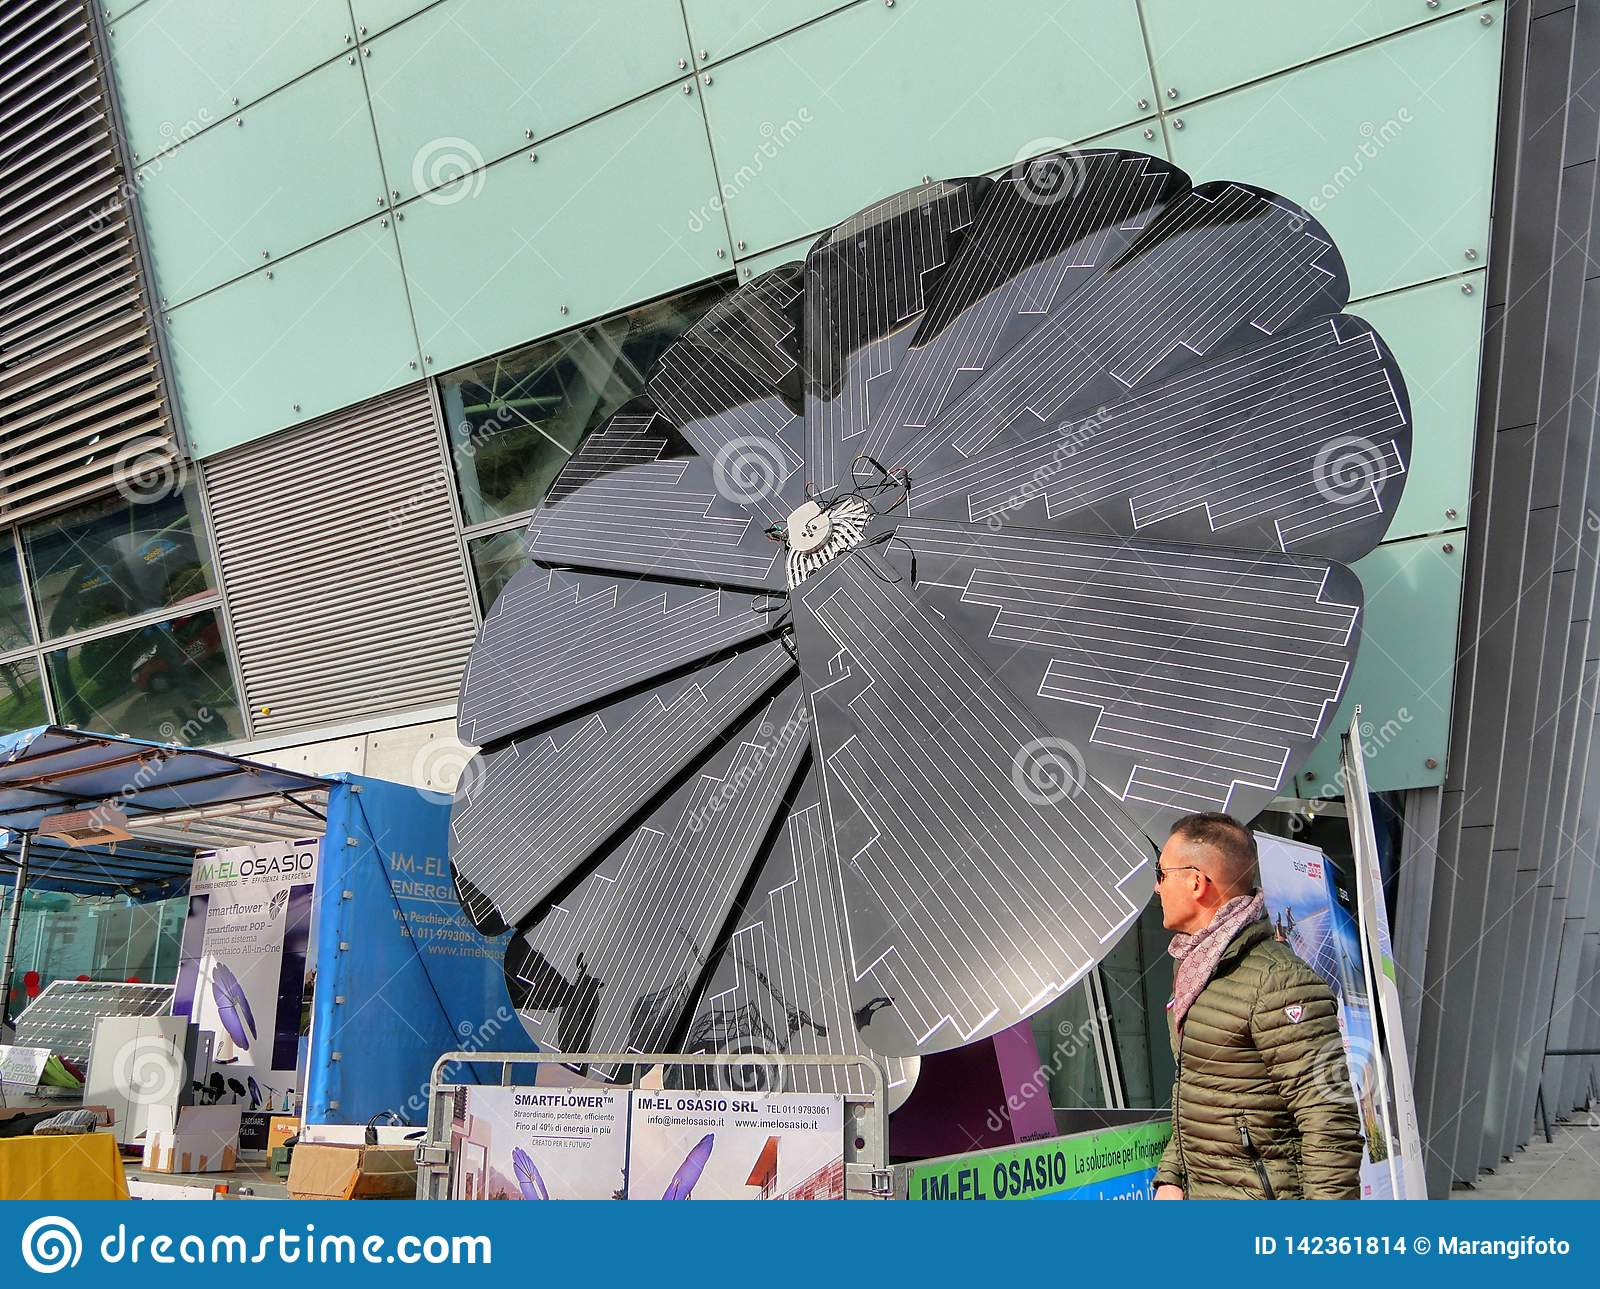 Foldable solar panel sunflower shaped on display